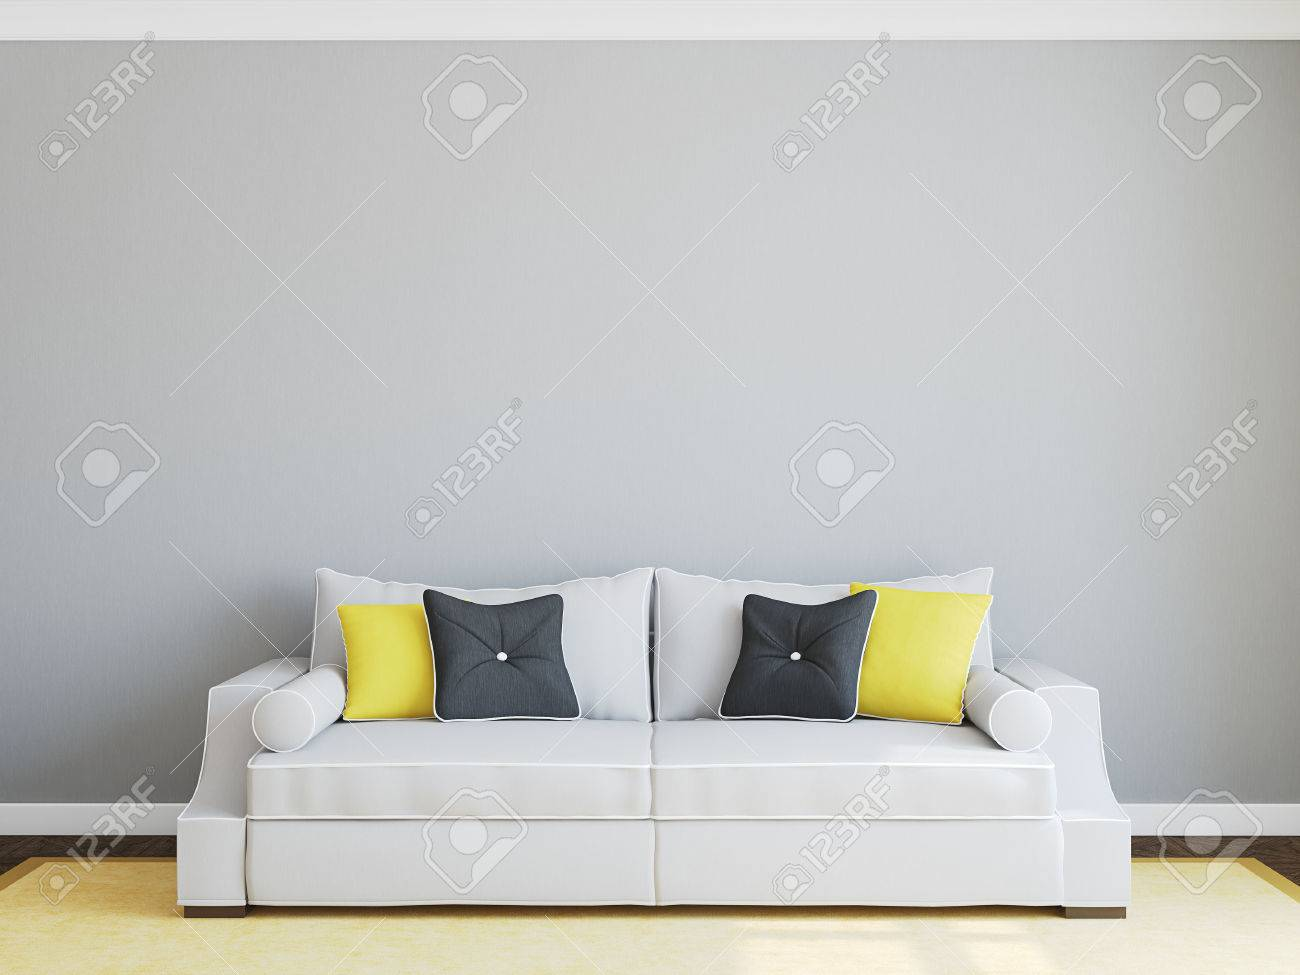 Modern living-room interior with gray couch. 3d render. - 50220624